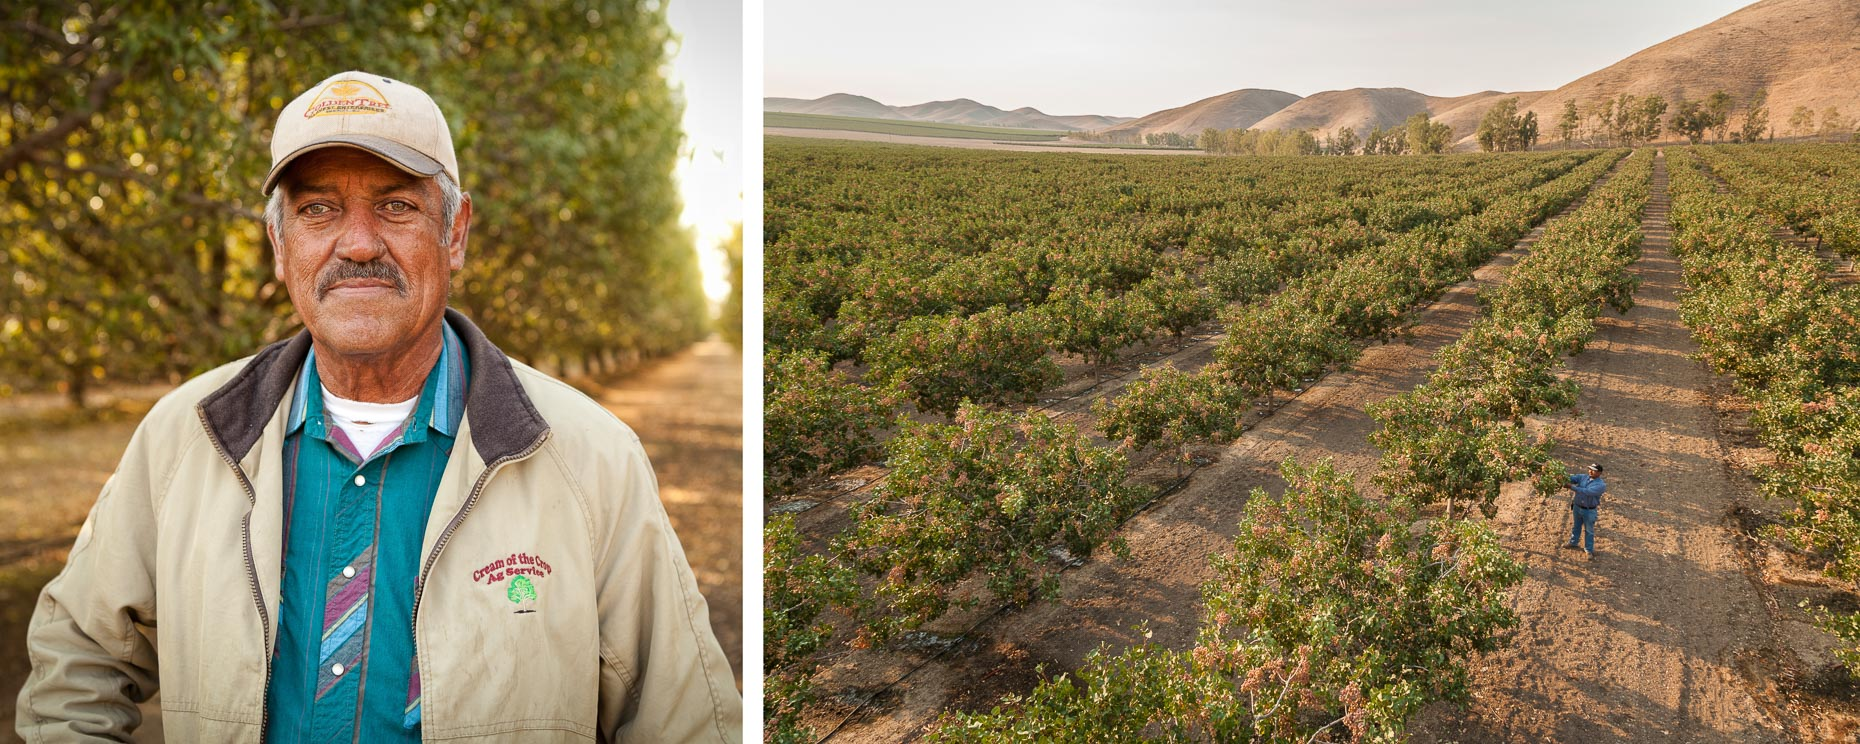 Portrait of man in orchard and overhead shot of man inspecting pistachio crop orchard by David Zaitz